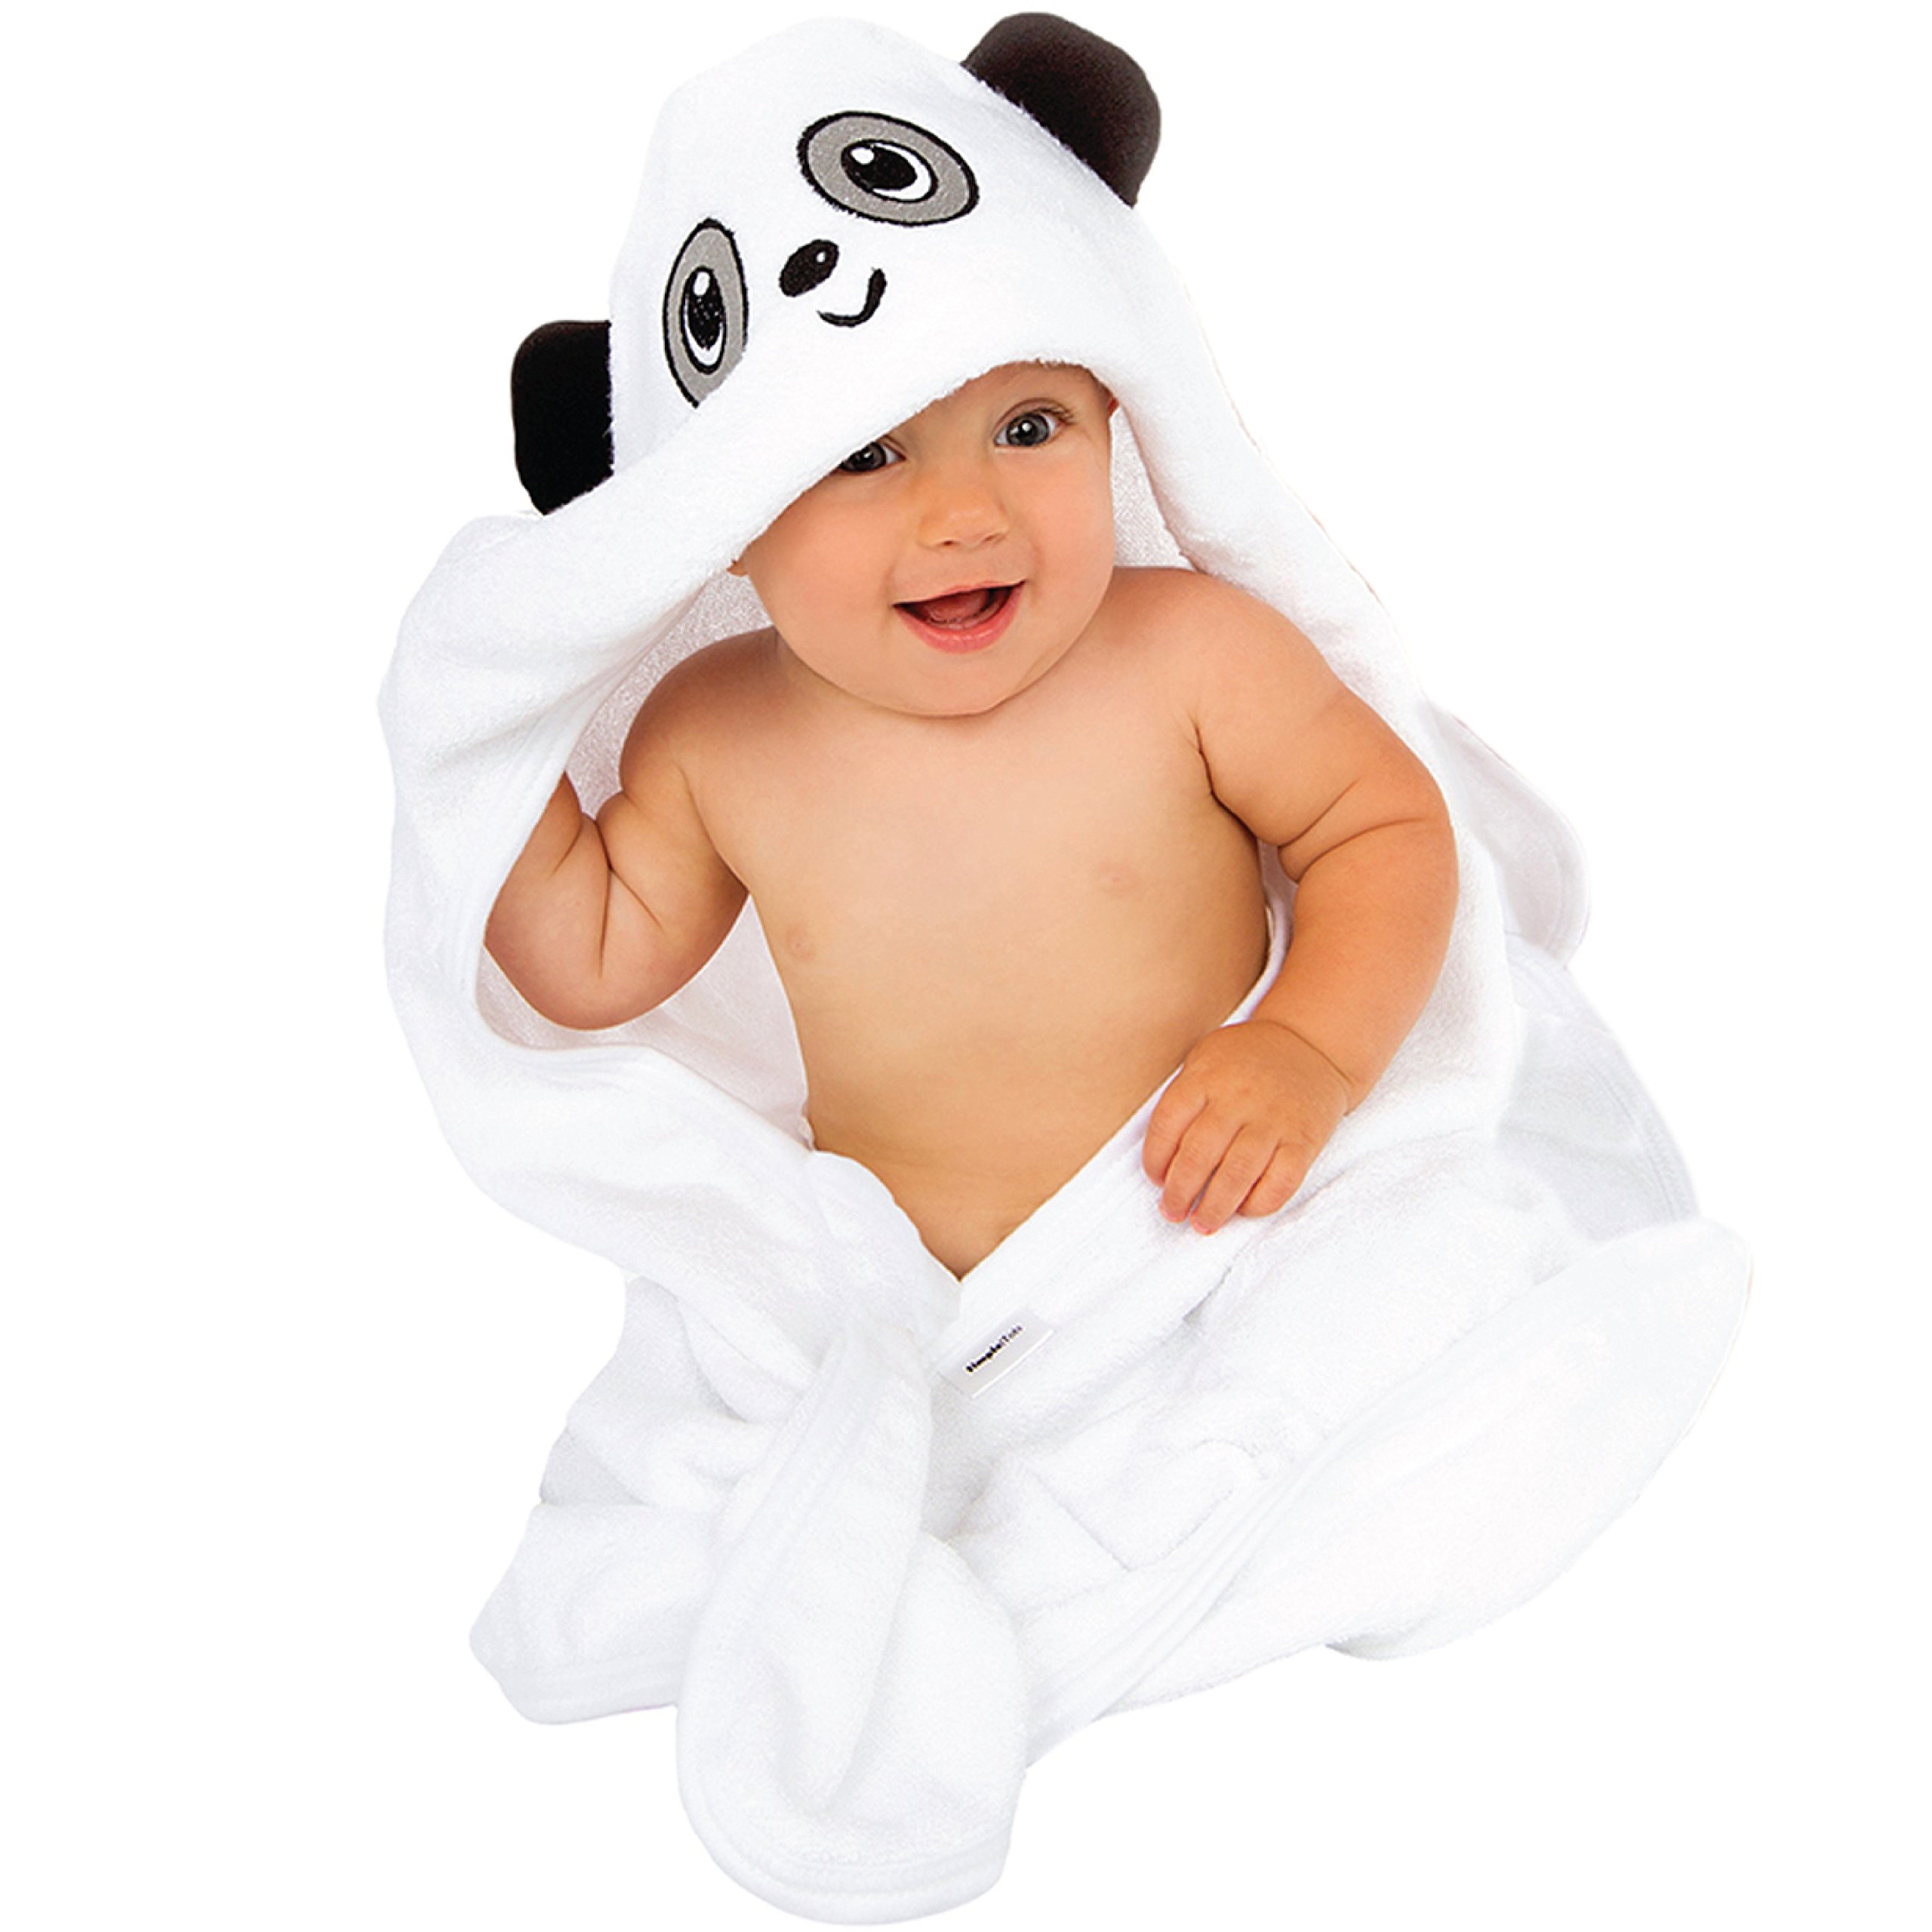 Panda Hooded Baby Towel | 100% Organic Bamboo | Cute Animal Design Great for Boys and Girls | Extra Soft and Thick for Infant, Toddler, Newborn and Kids use at Bath Time, Beach and Pool